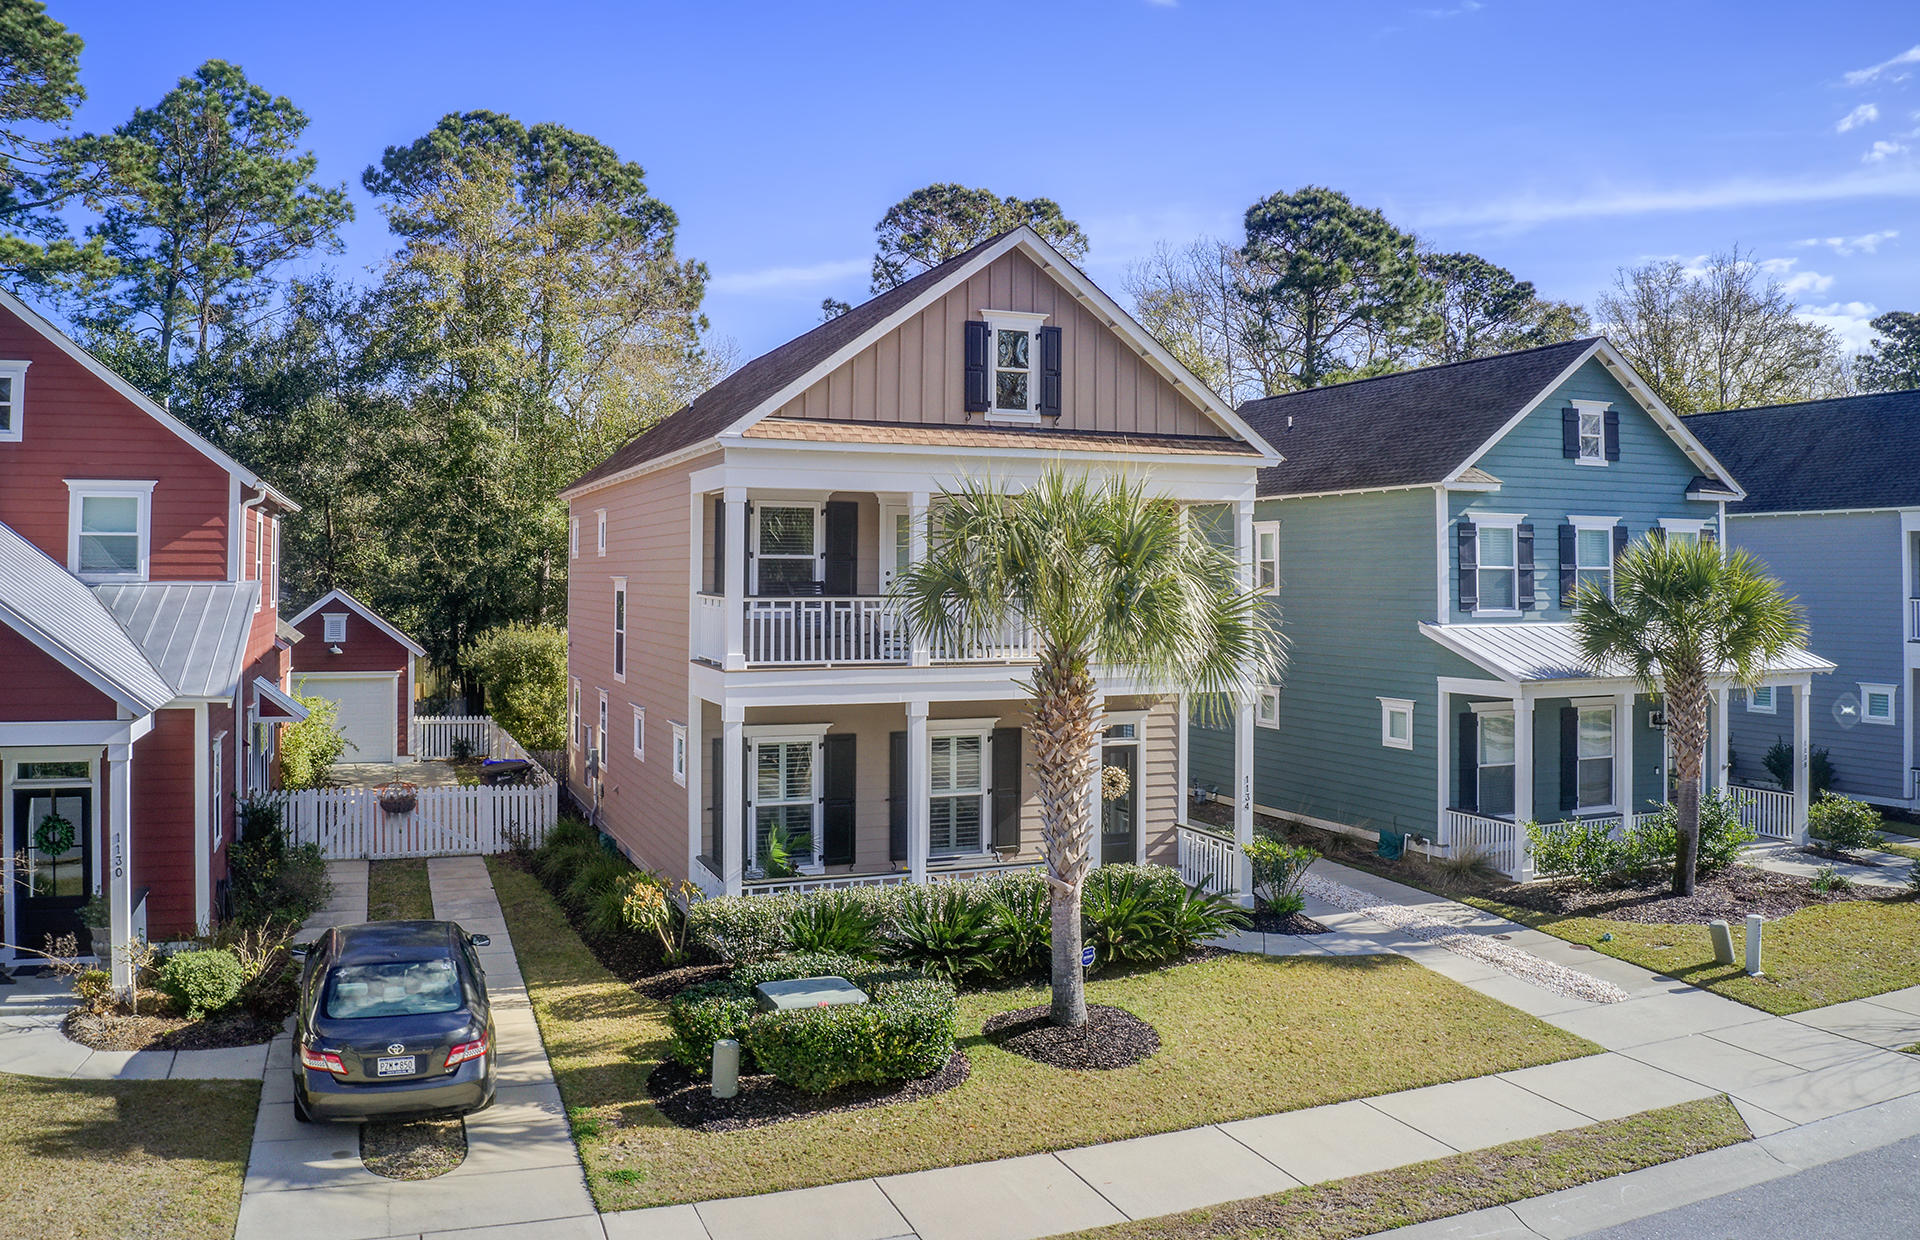 Wexford Park Homes For Sale - 1134 Wexford, Mount Pleasant, SC - 2